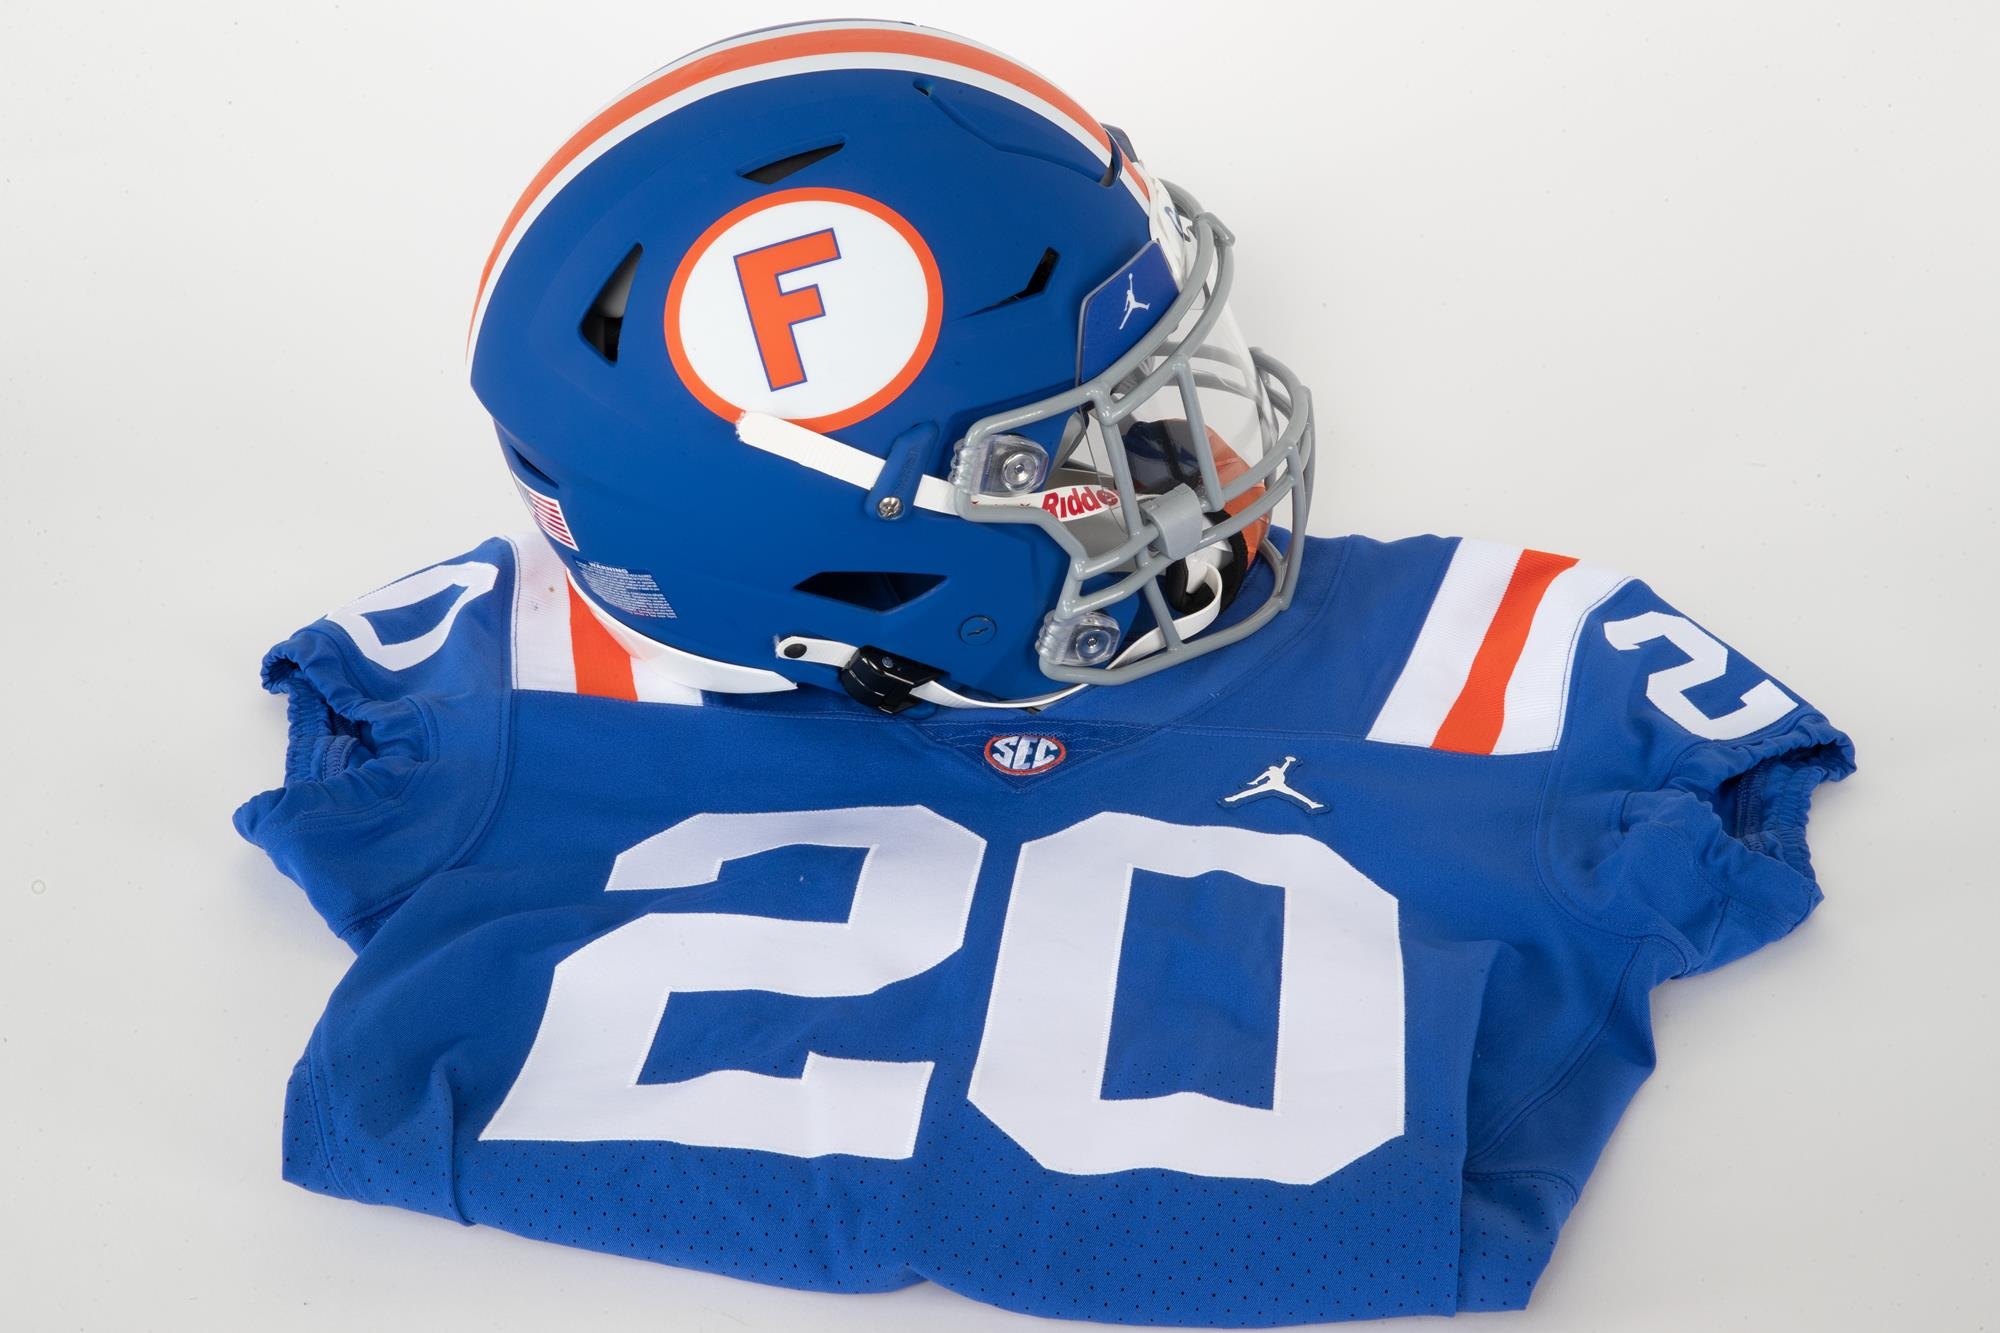 Gators to Wear 1960s Throwback Uniforms for Homecoming Weekend ...